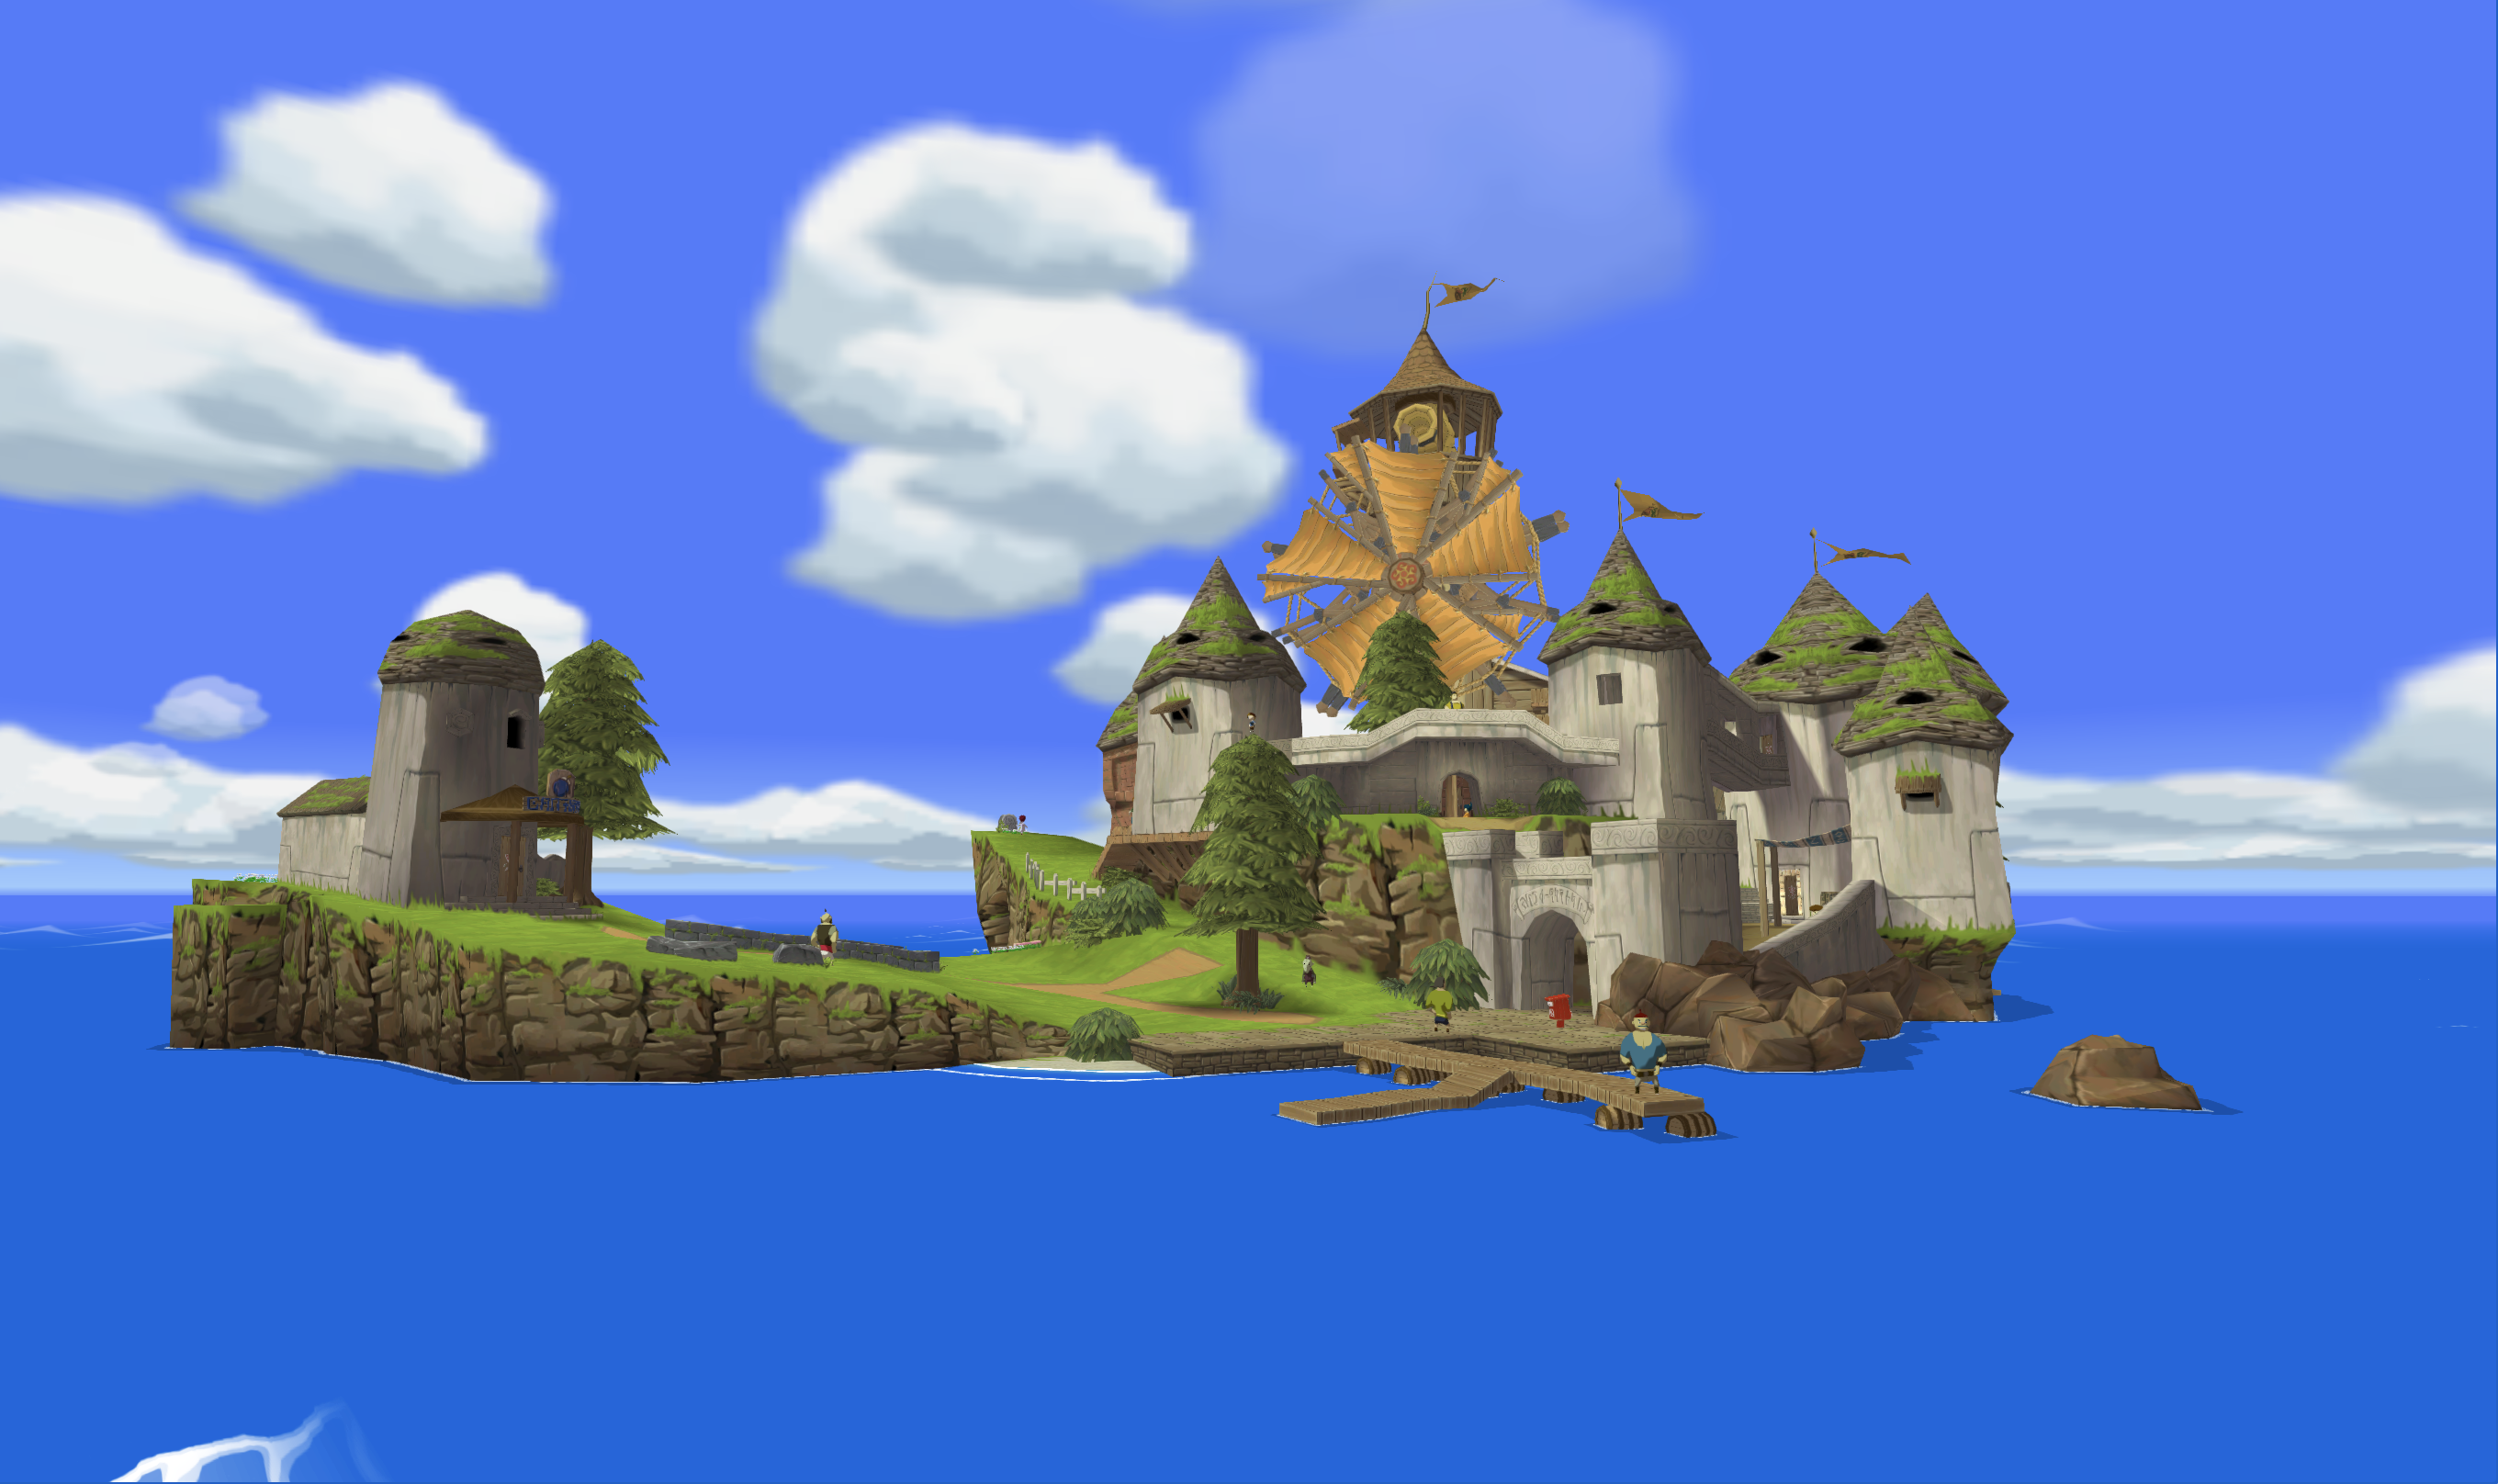 a straight on shot of windfall island from the legend of Zelda: wind waker